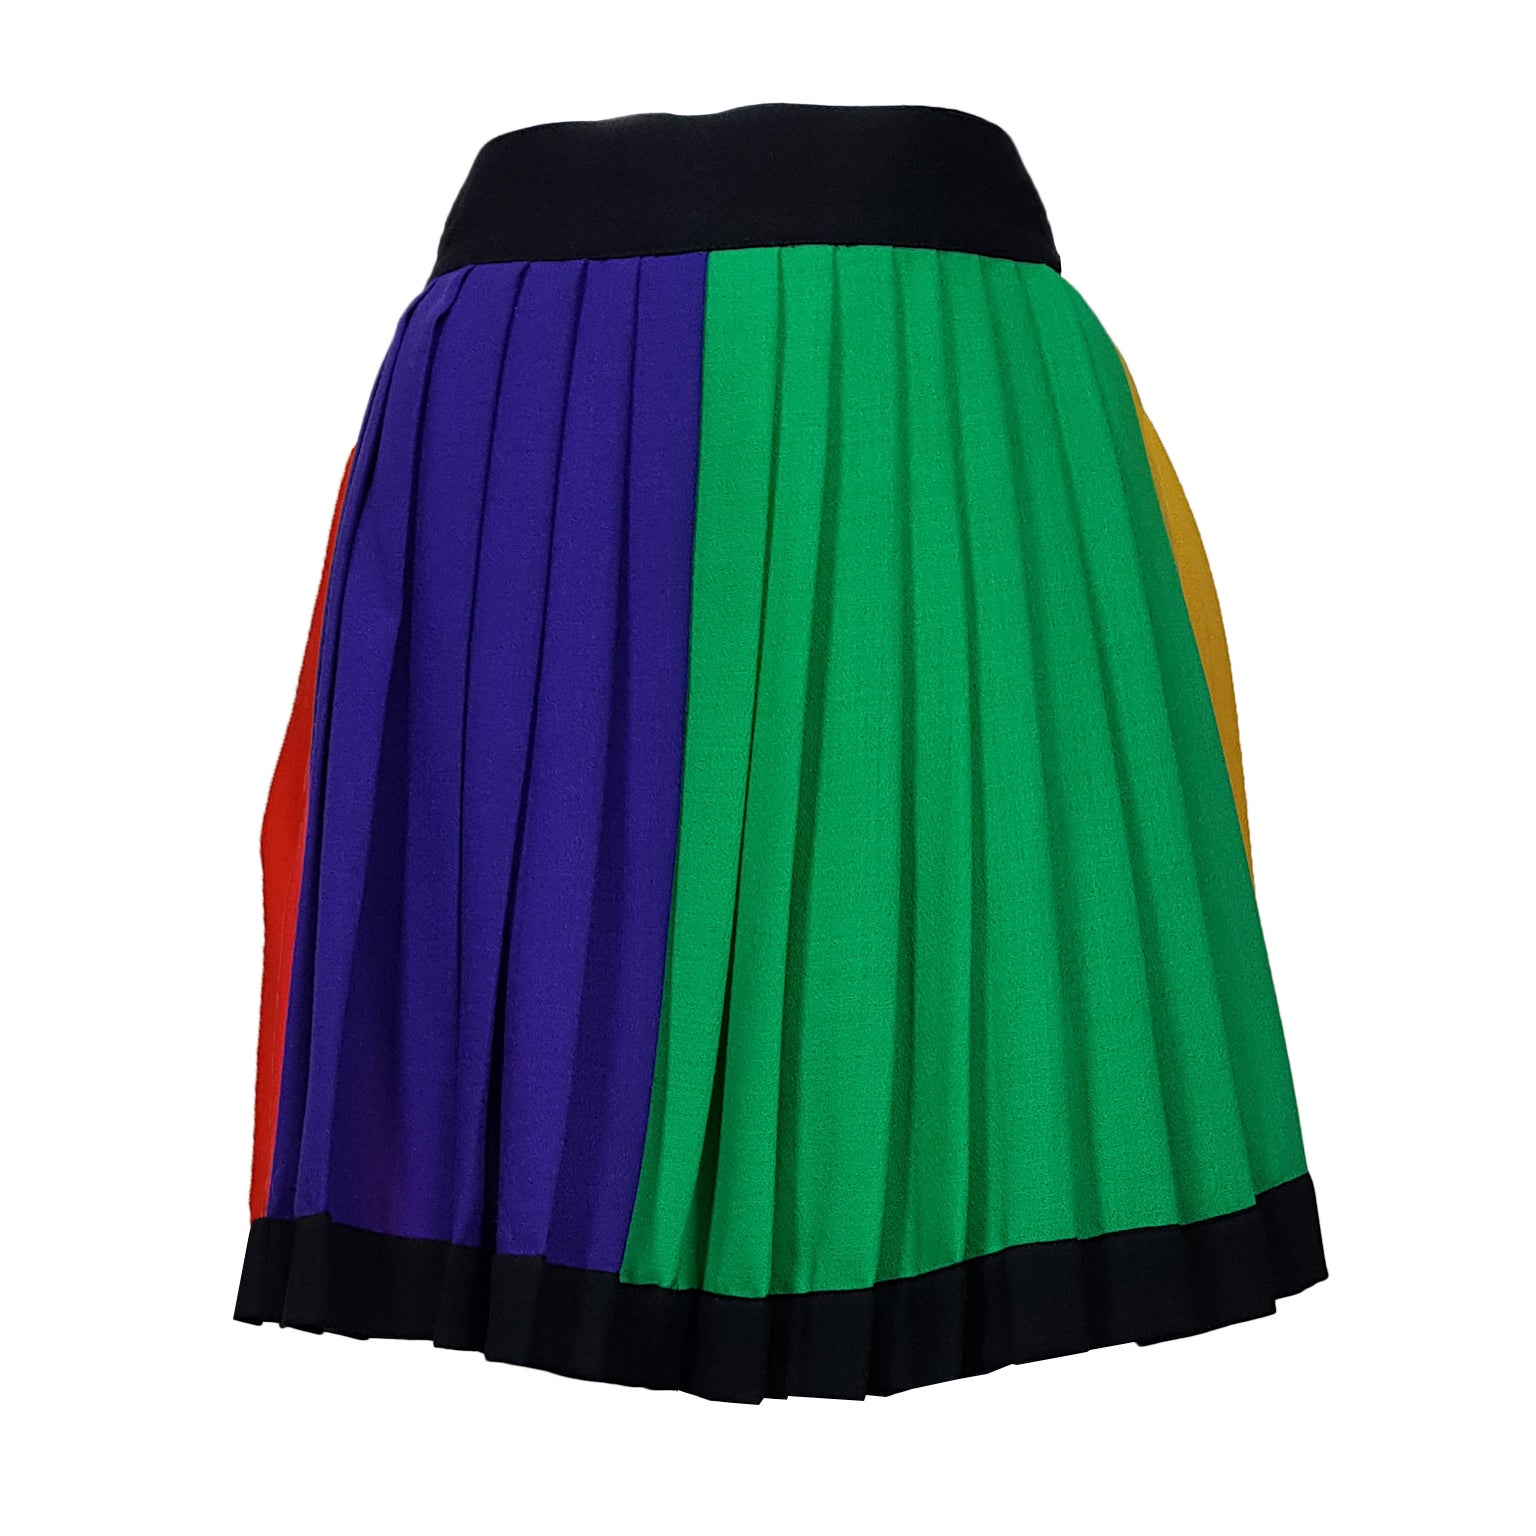 a0a39bf942 Gianni Versace Couture Colorblock Pleated Skirt AW 1991 For Sale at 1stdibs